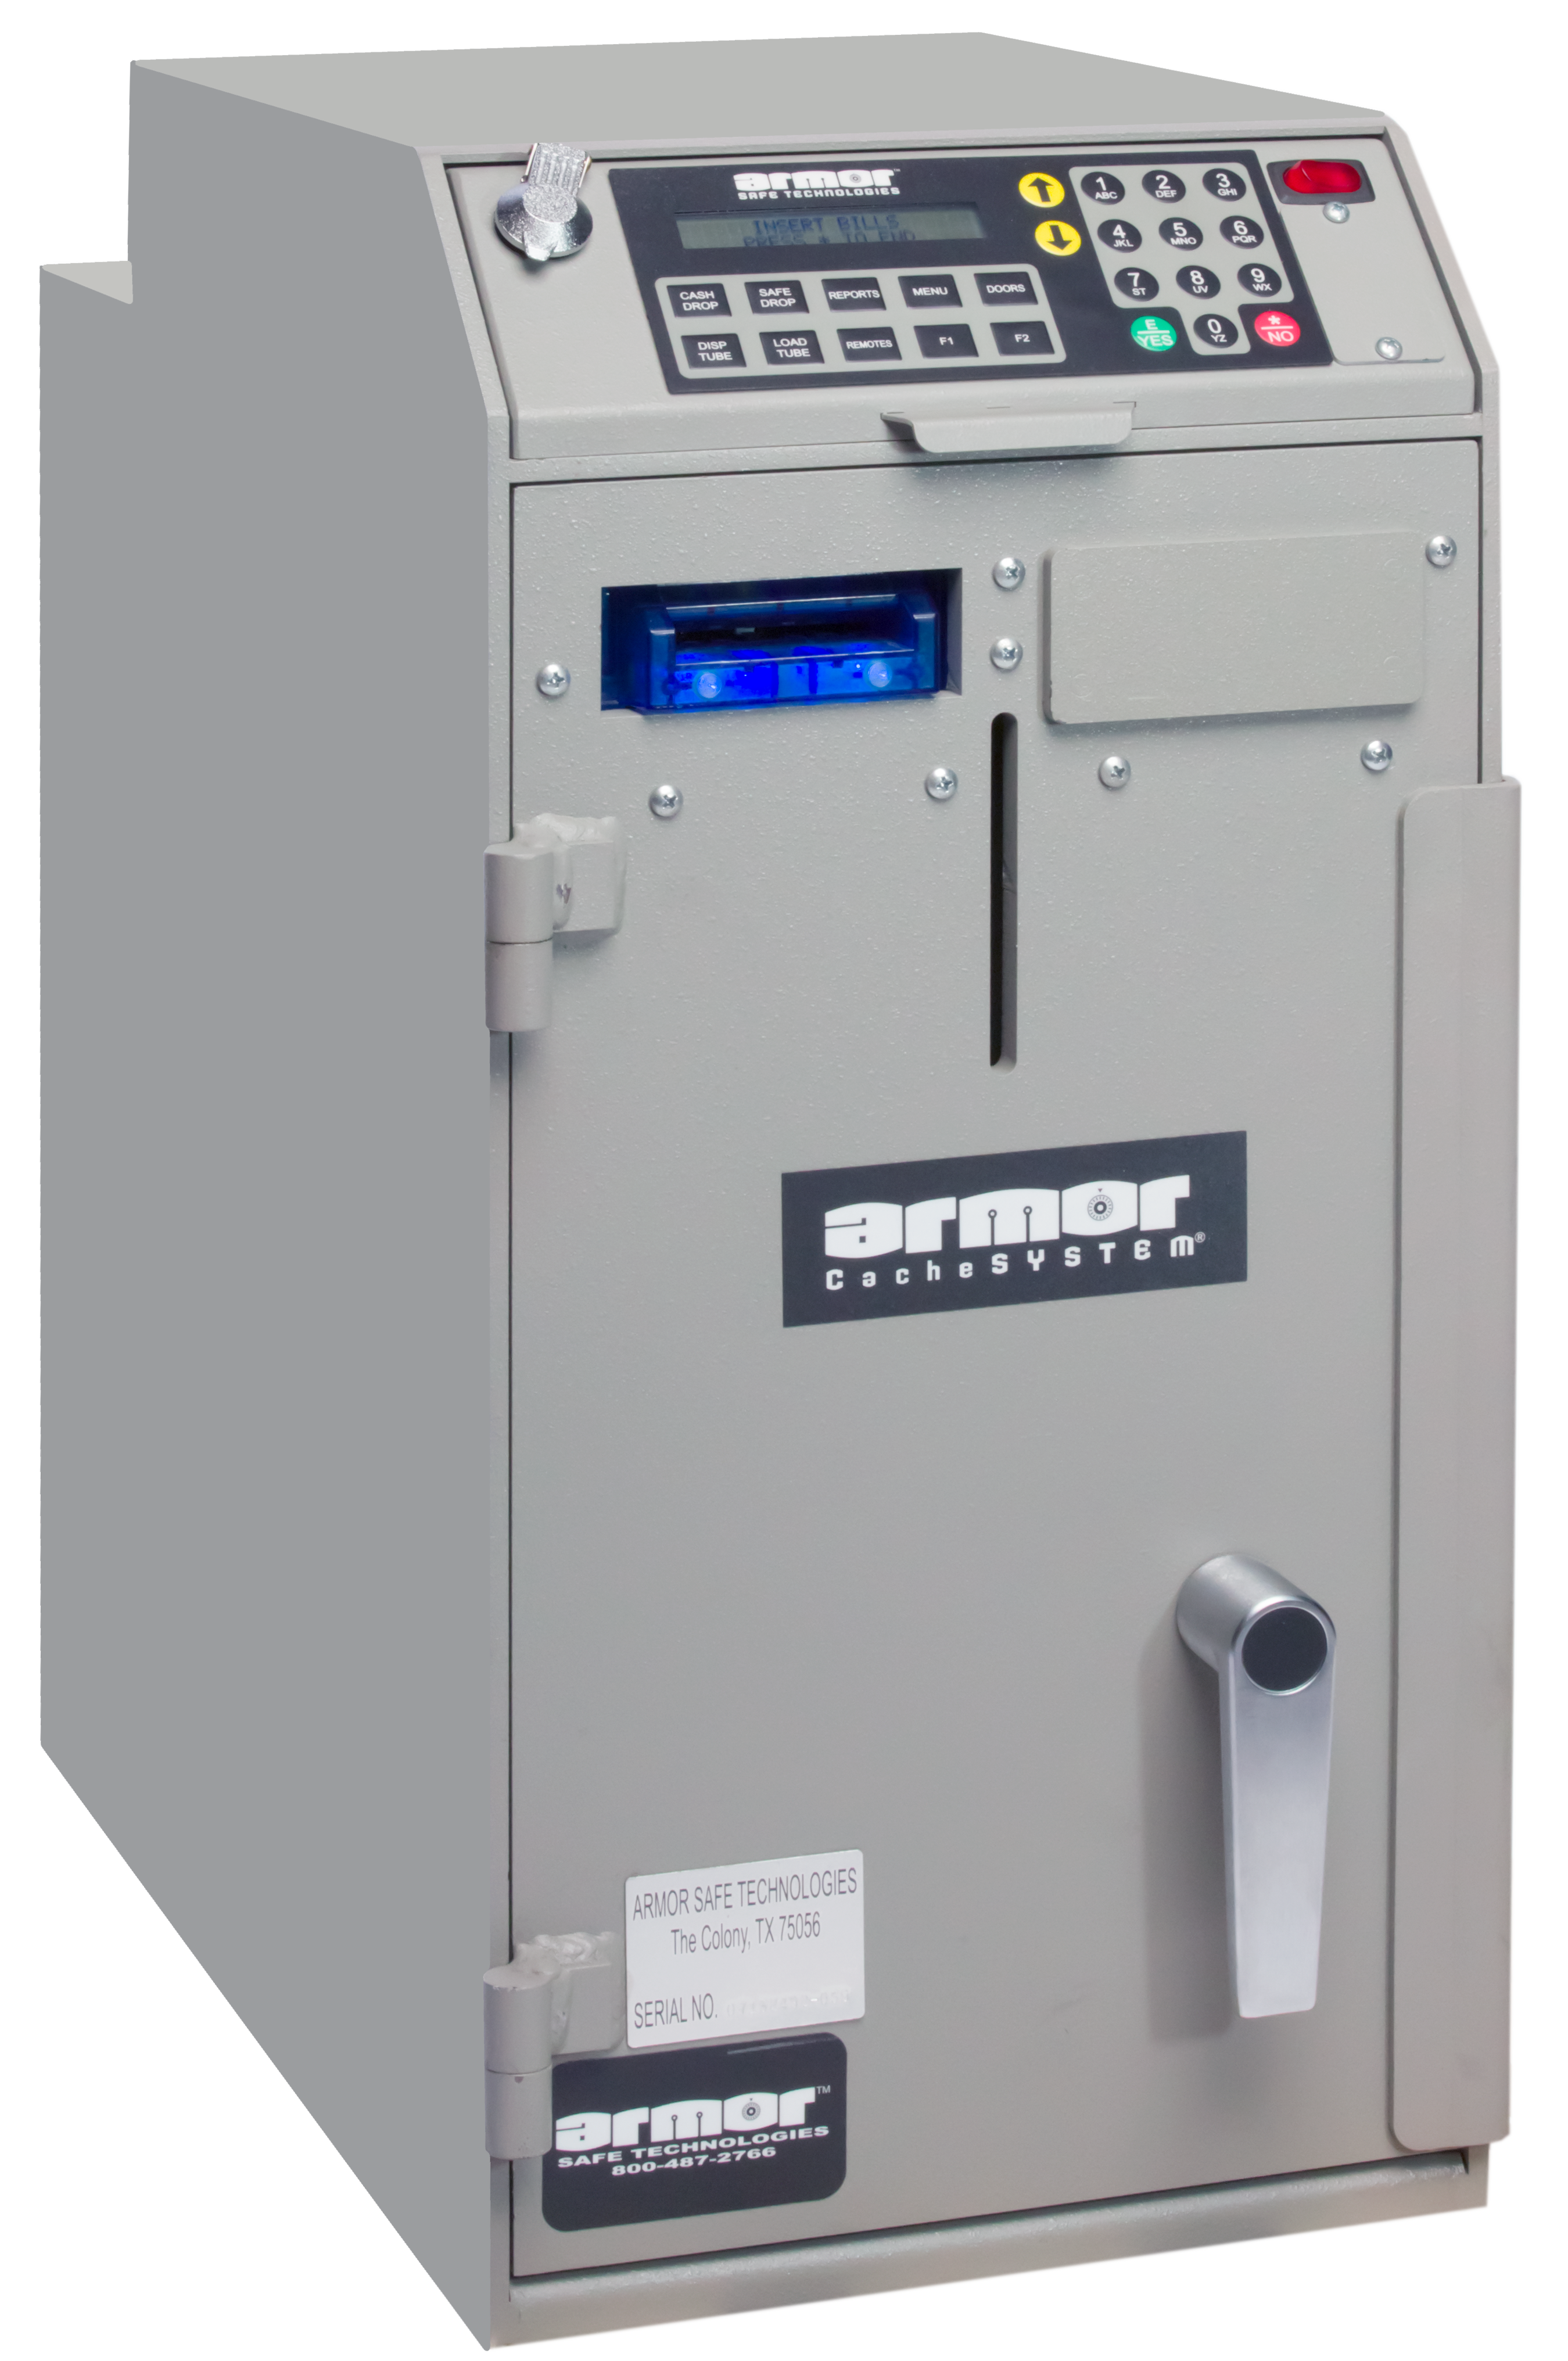 Armor 2400 Series Smart Safe